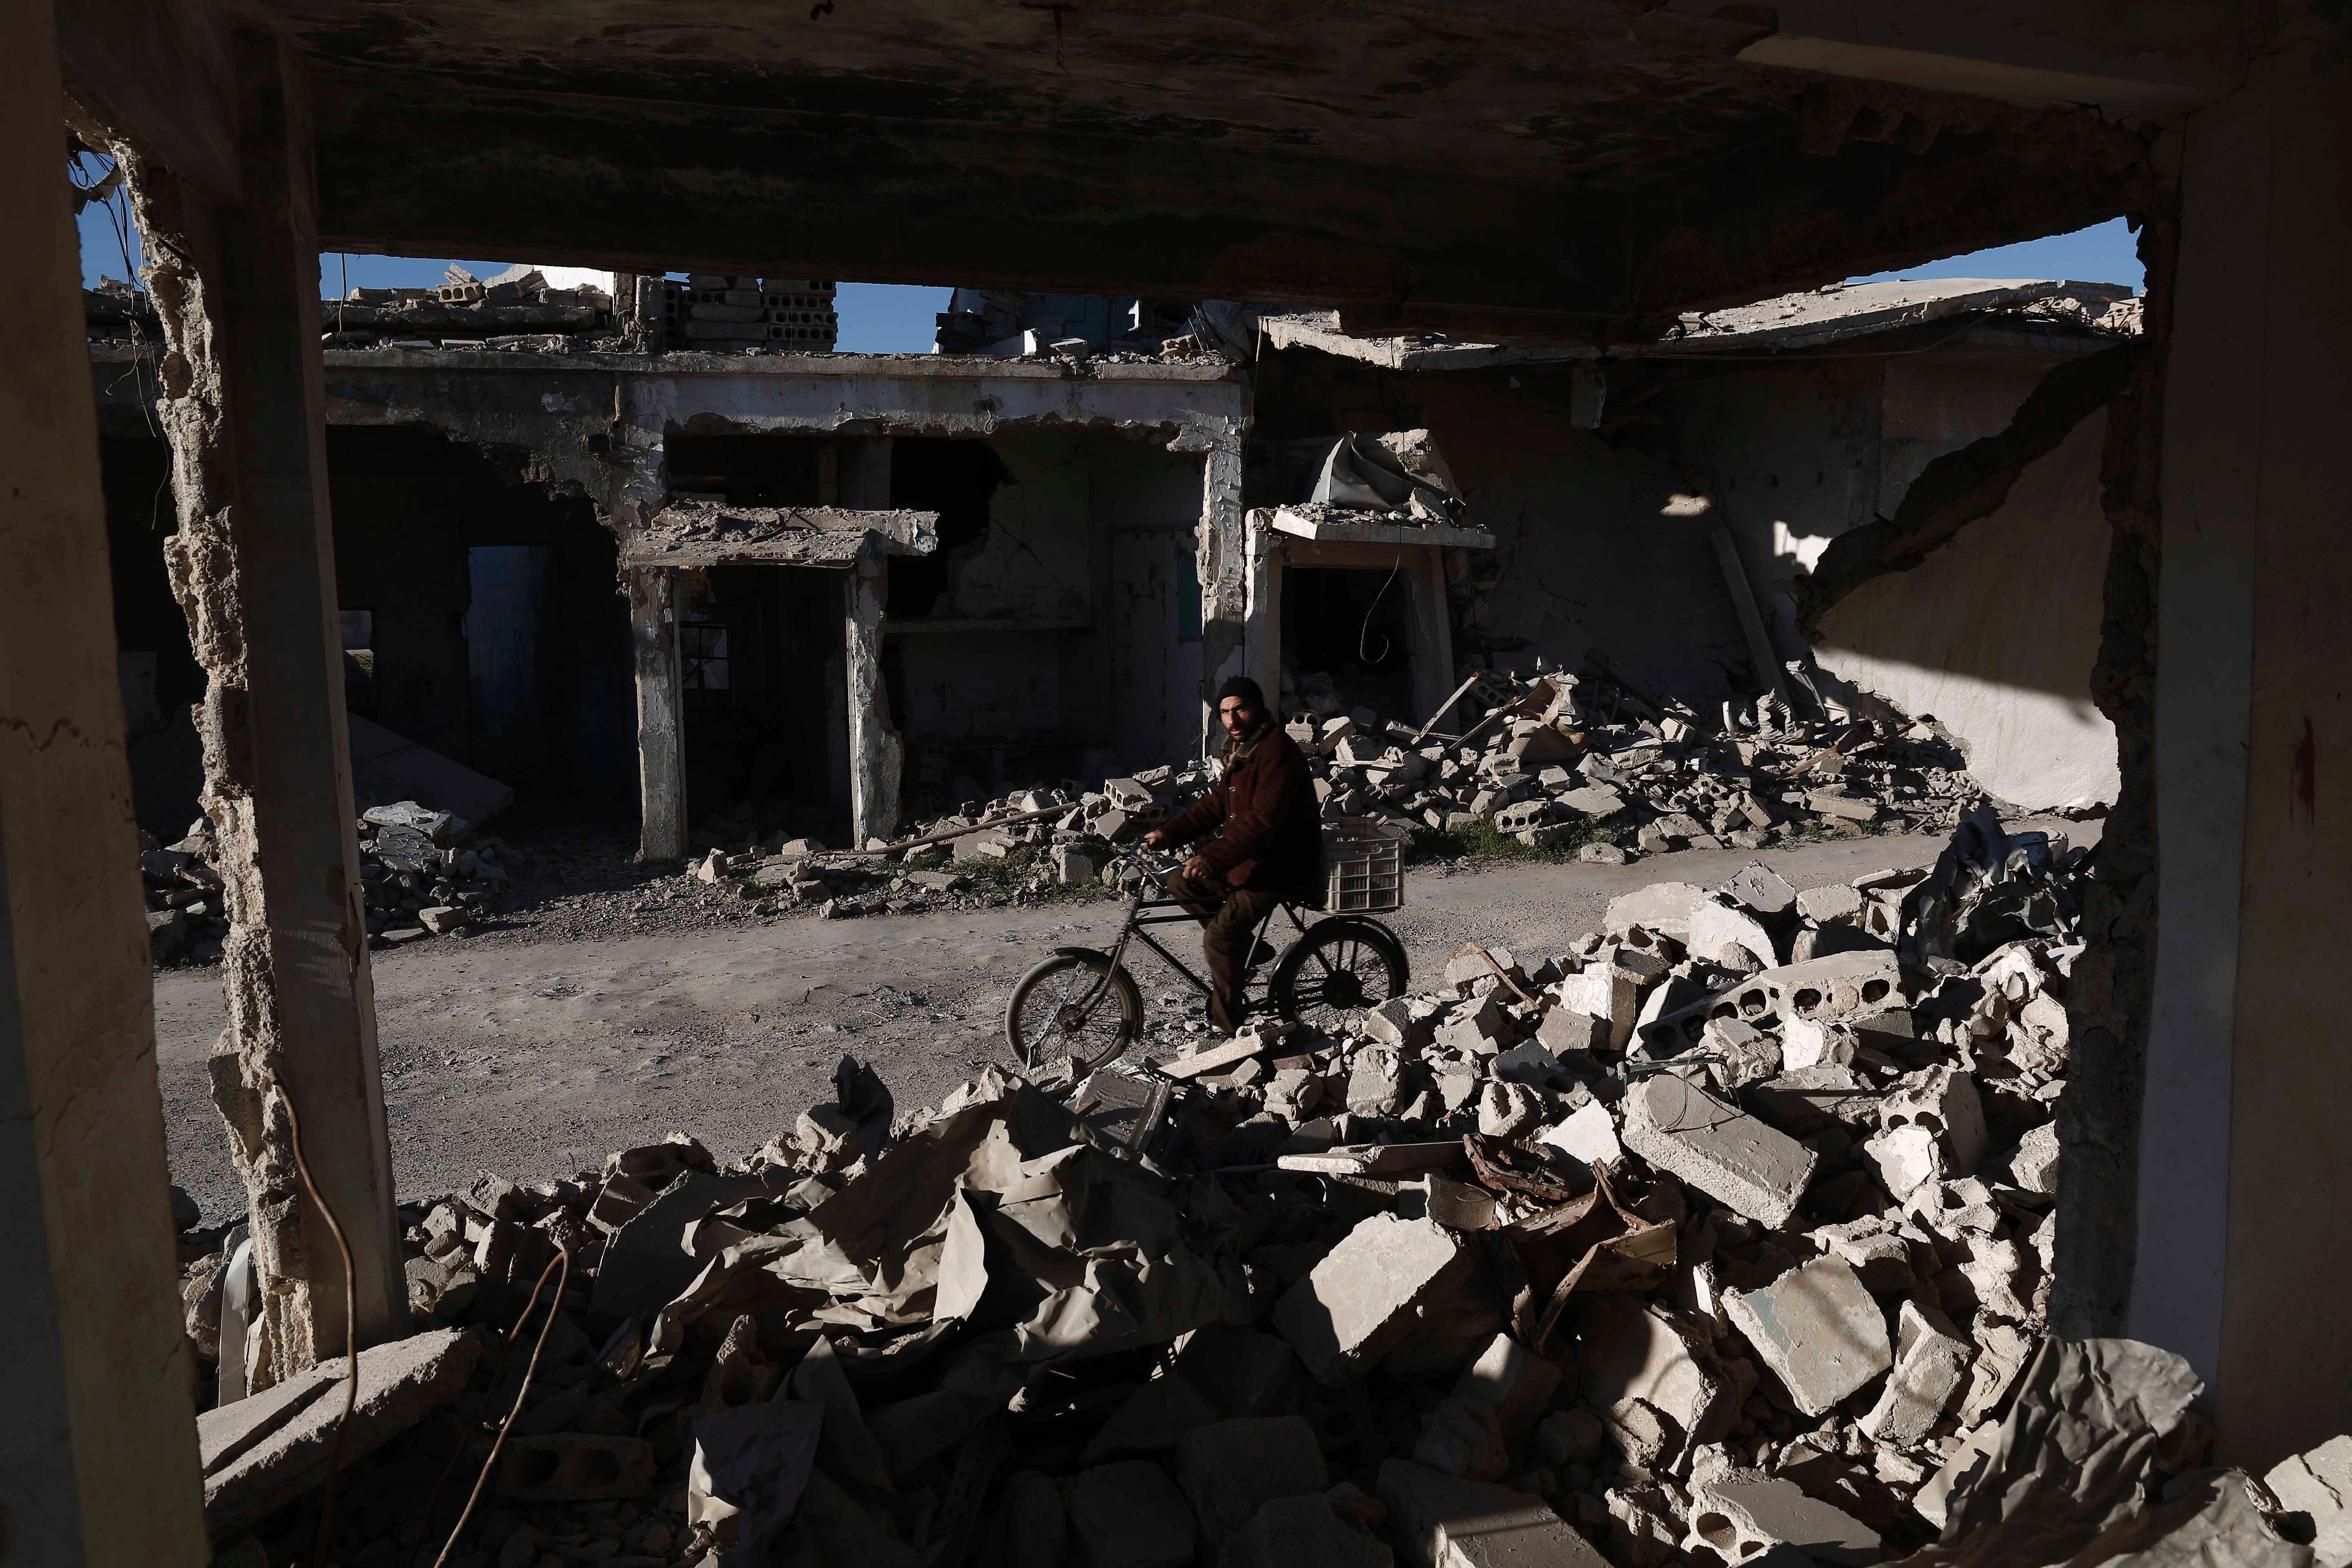 A Syrian man rides his bicycle past the rubble of destroyed buildings on March 7, 2016, in the rebel-held town of Douma, on the outskirts of Damascus.